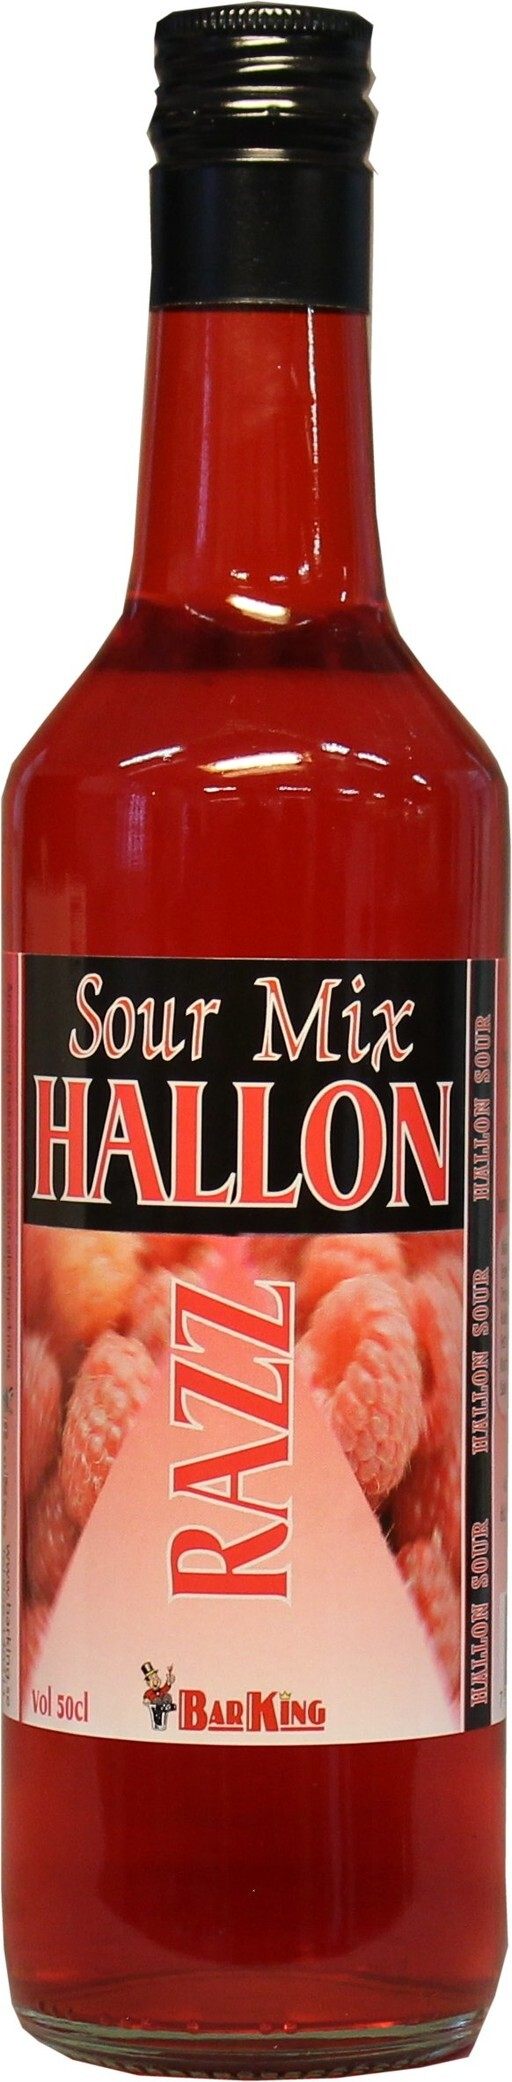 Sourmix Hallon 50 cl